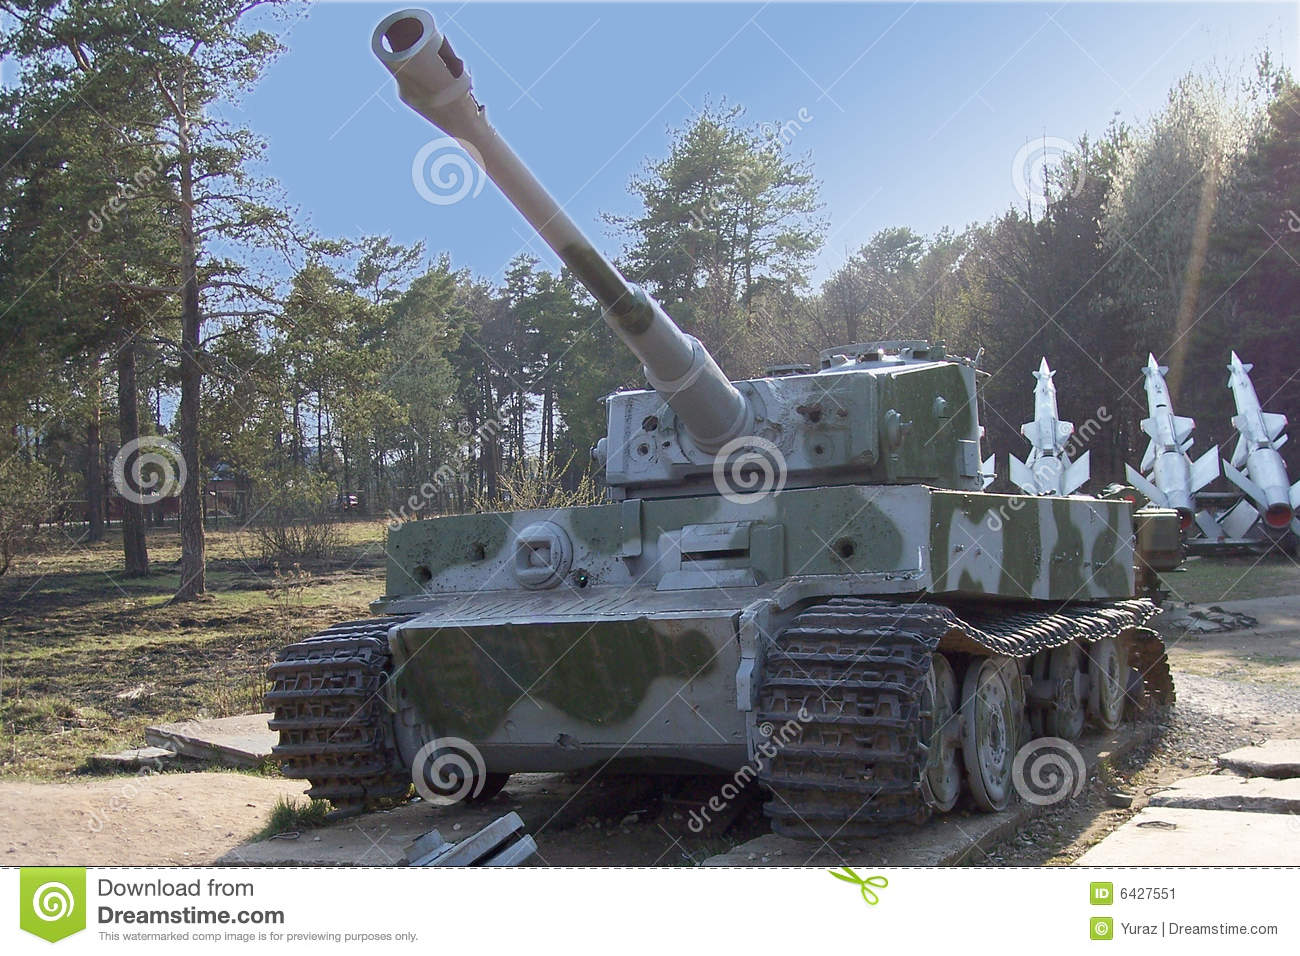 Famous Tiger tank at the openair museum in Russia.